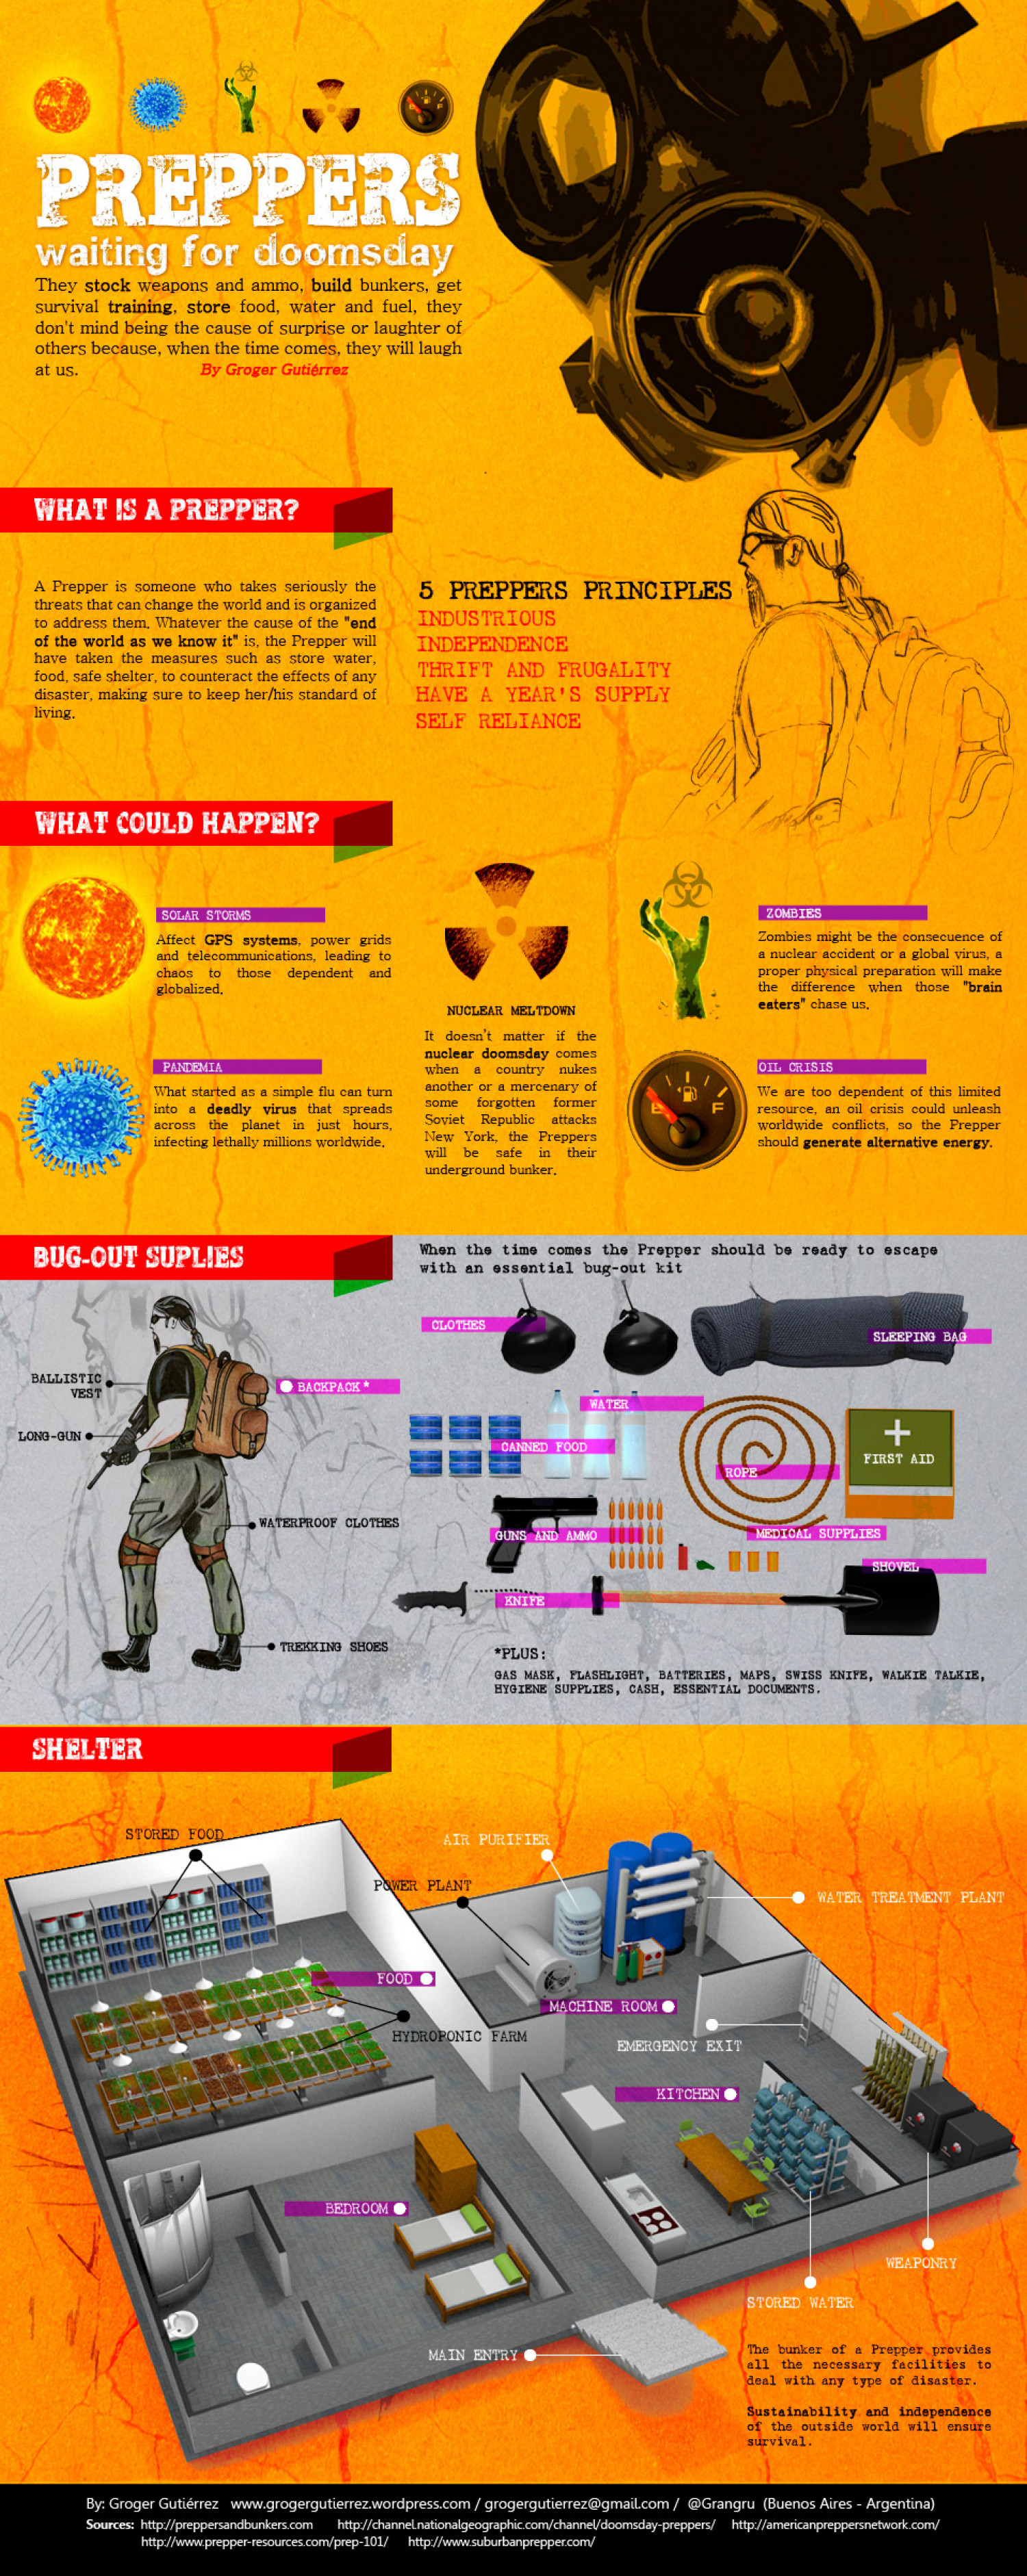 Preppers: waiting for doomsday Infographic